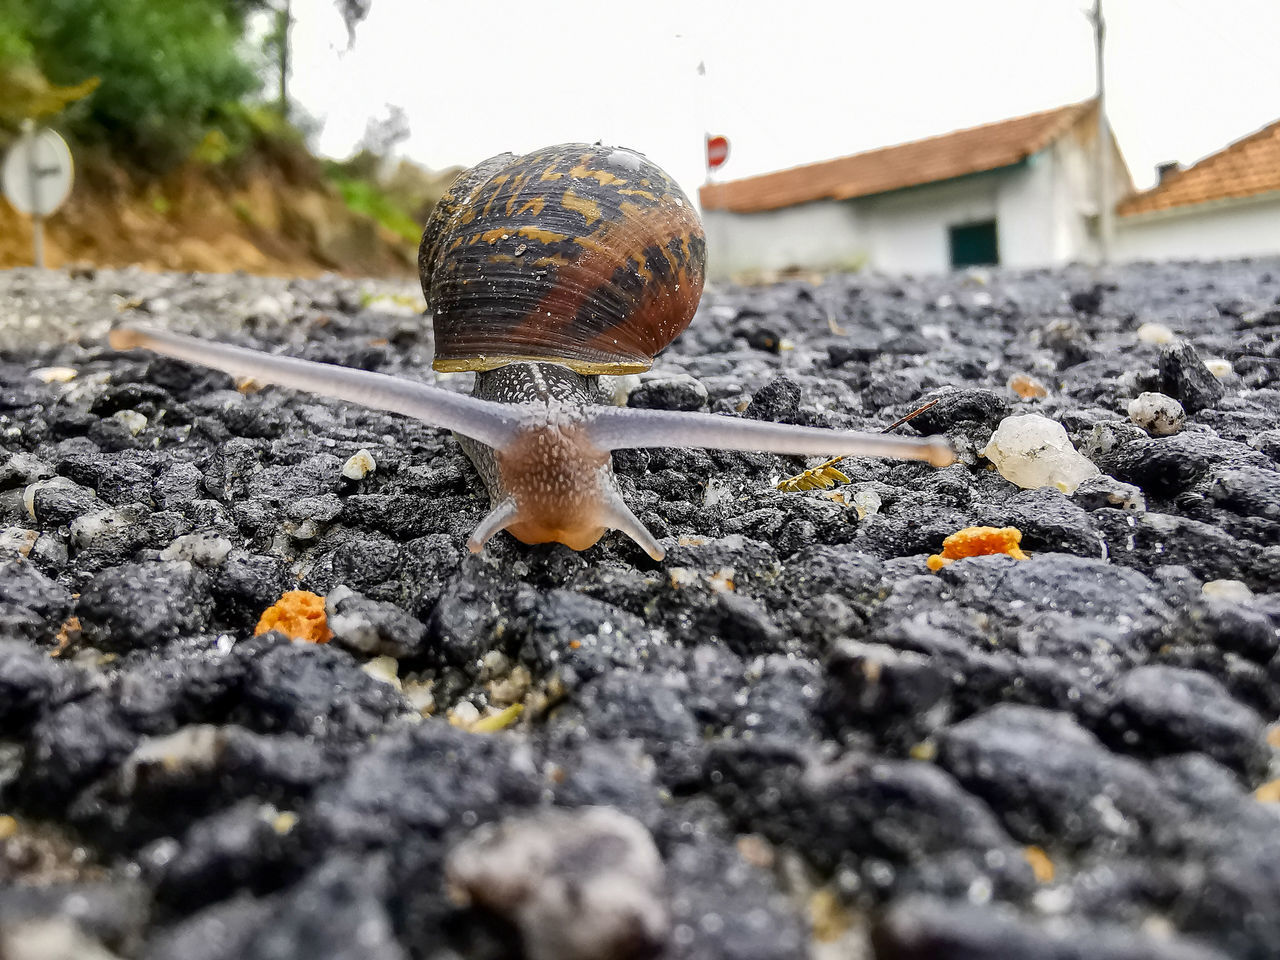 CLOSE-UP OF SNAIL ON A SURFACE